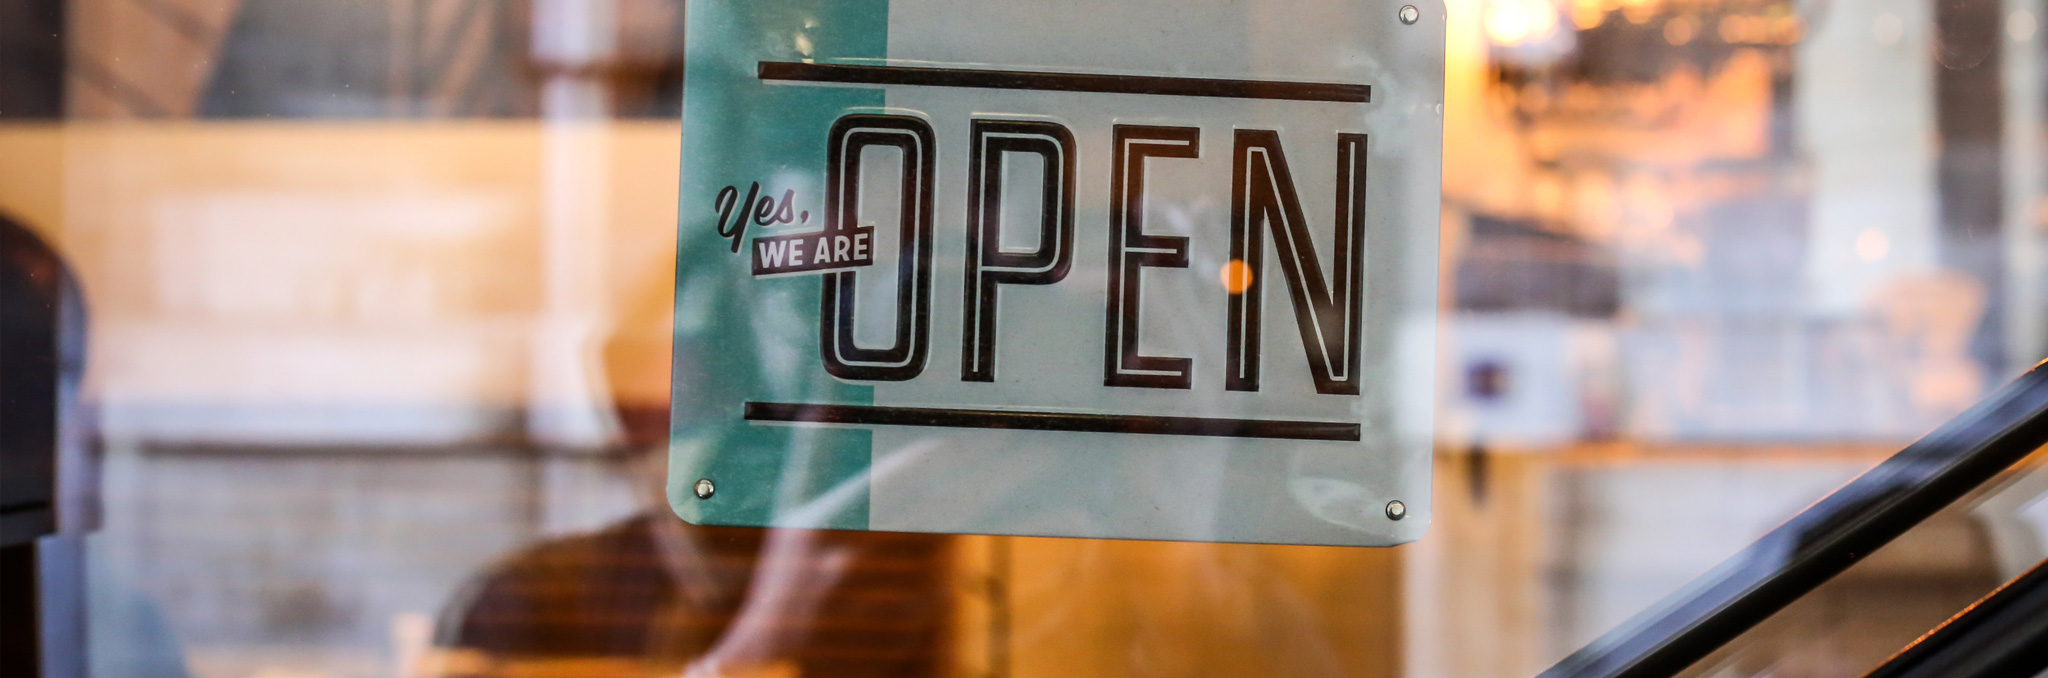 Yes we are Open sign. Photo by Alexandre Godreau on Unsplash